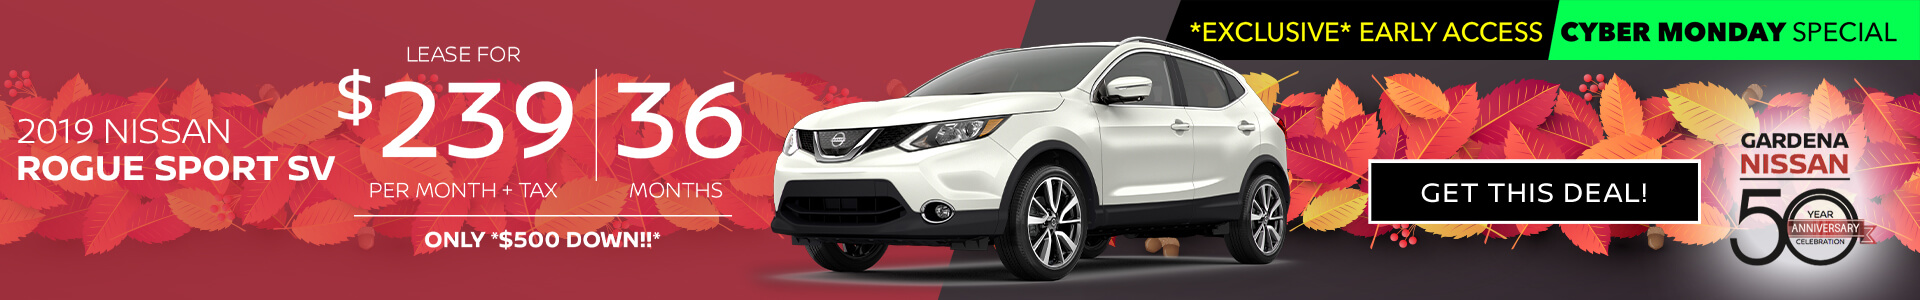 Rogue Sport - $249 Lease